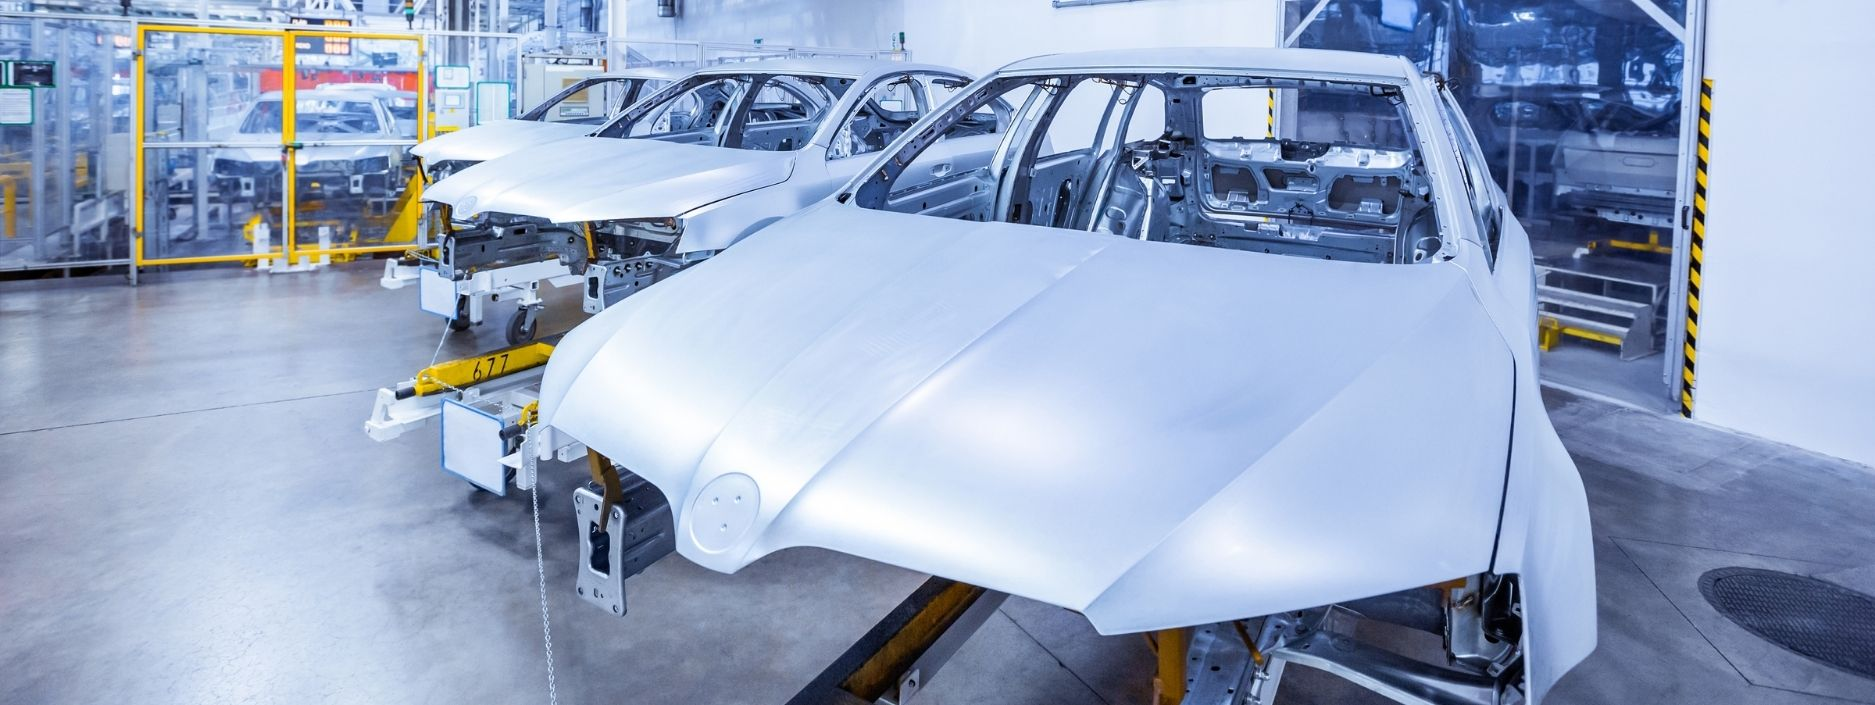 Silver car in production